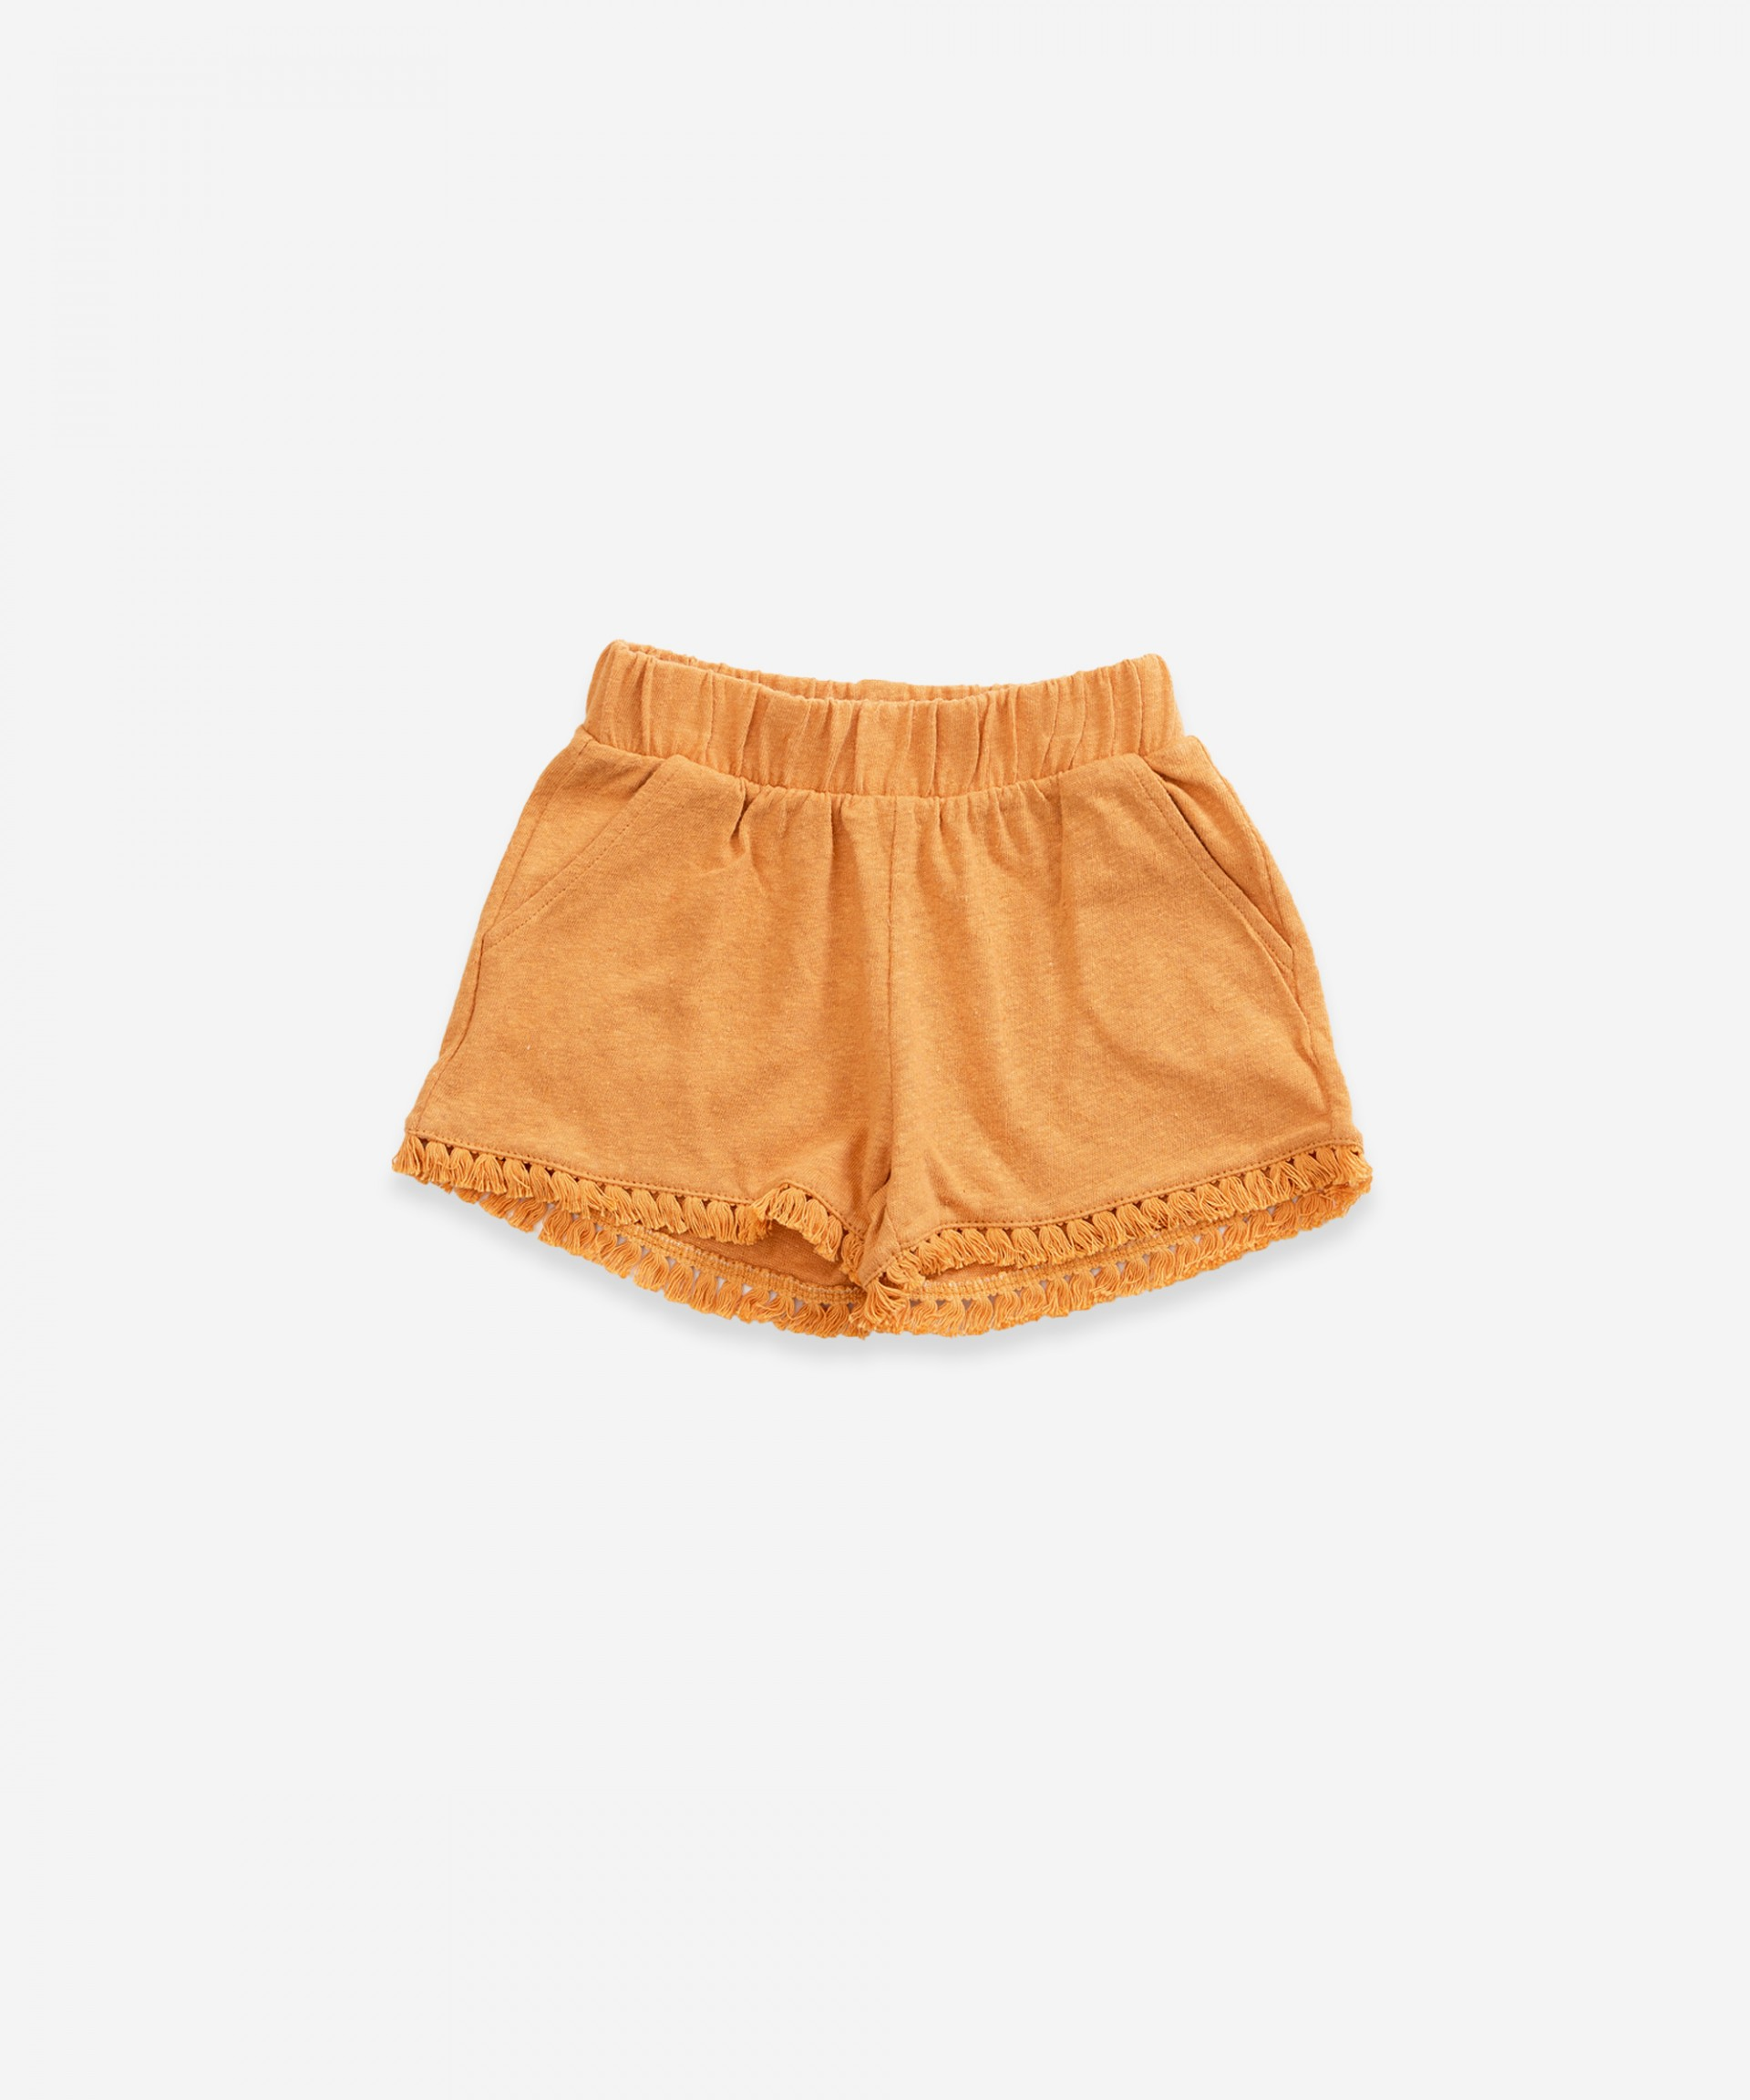 Shorts in organic cotton and linen | Weaving